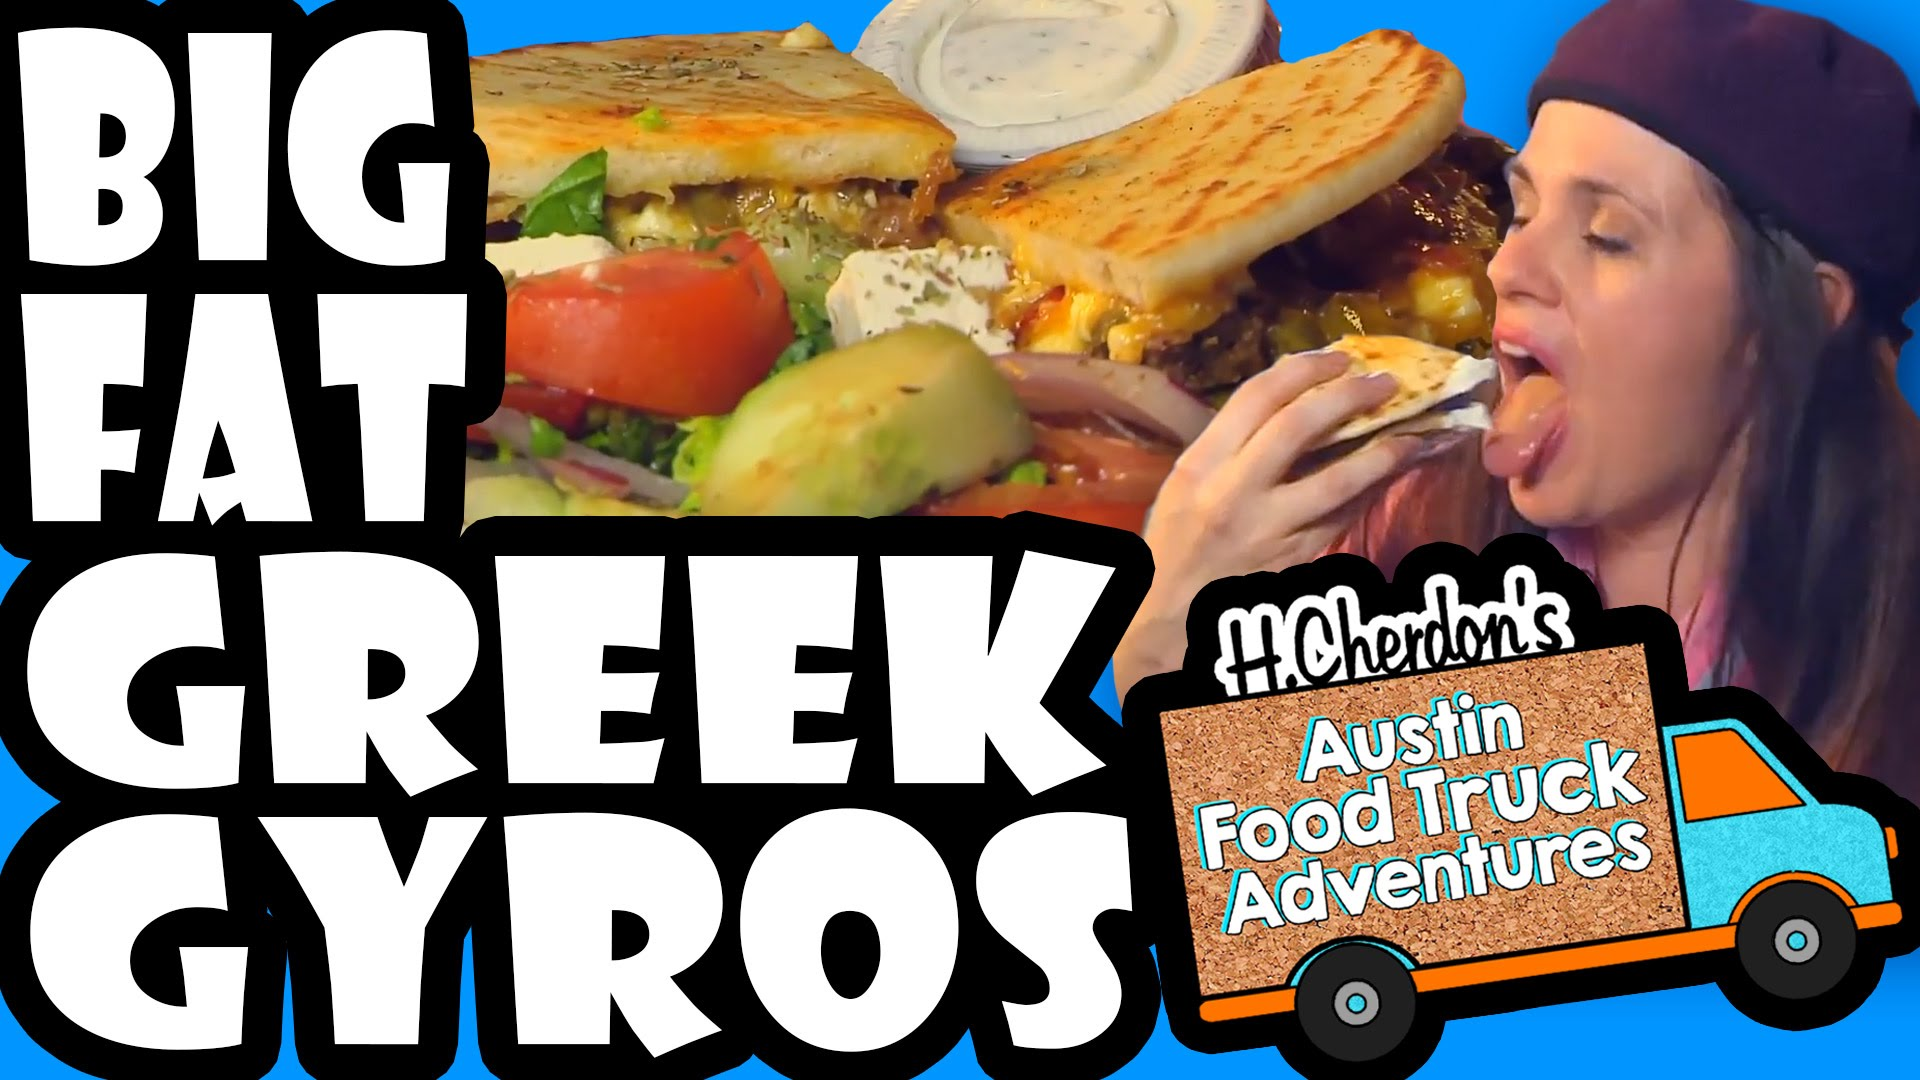 Big Fat Greek Gyros, Halal Sandwich, Tzatziki, Greek Salad, H.Cherdon's Austin Food Truck Adventures, S2 Trucklandia